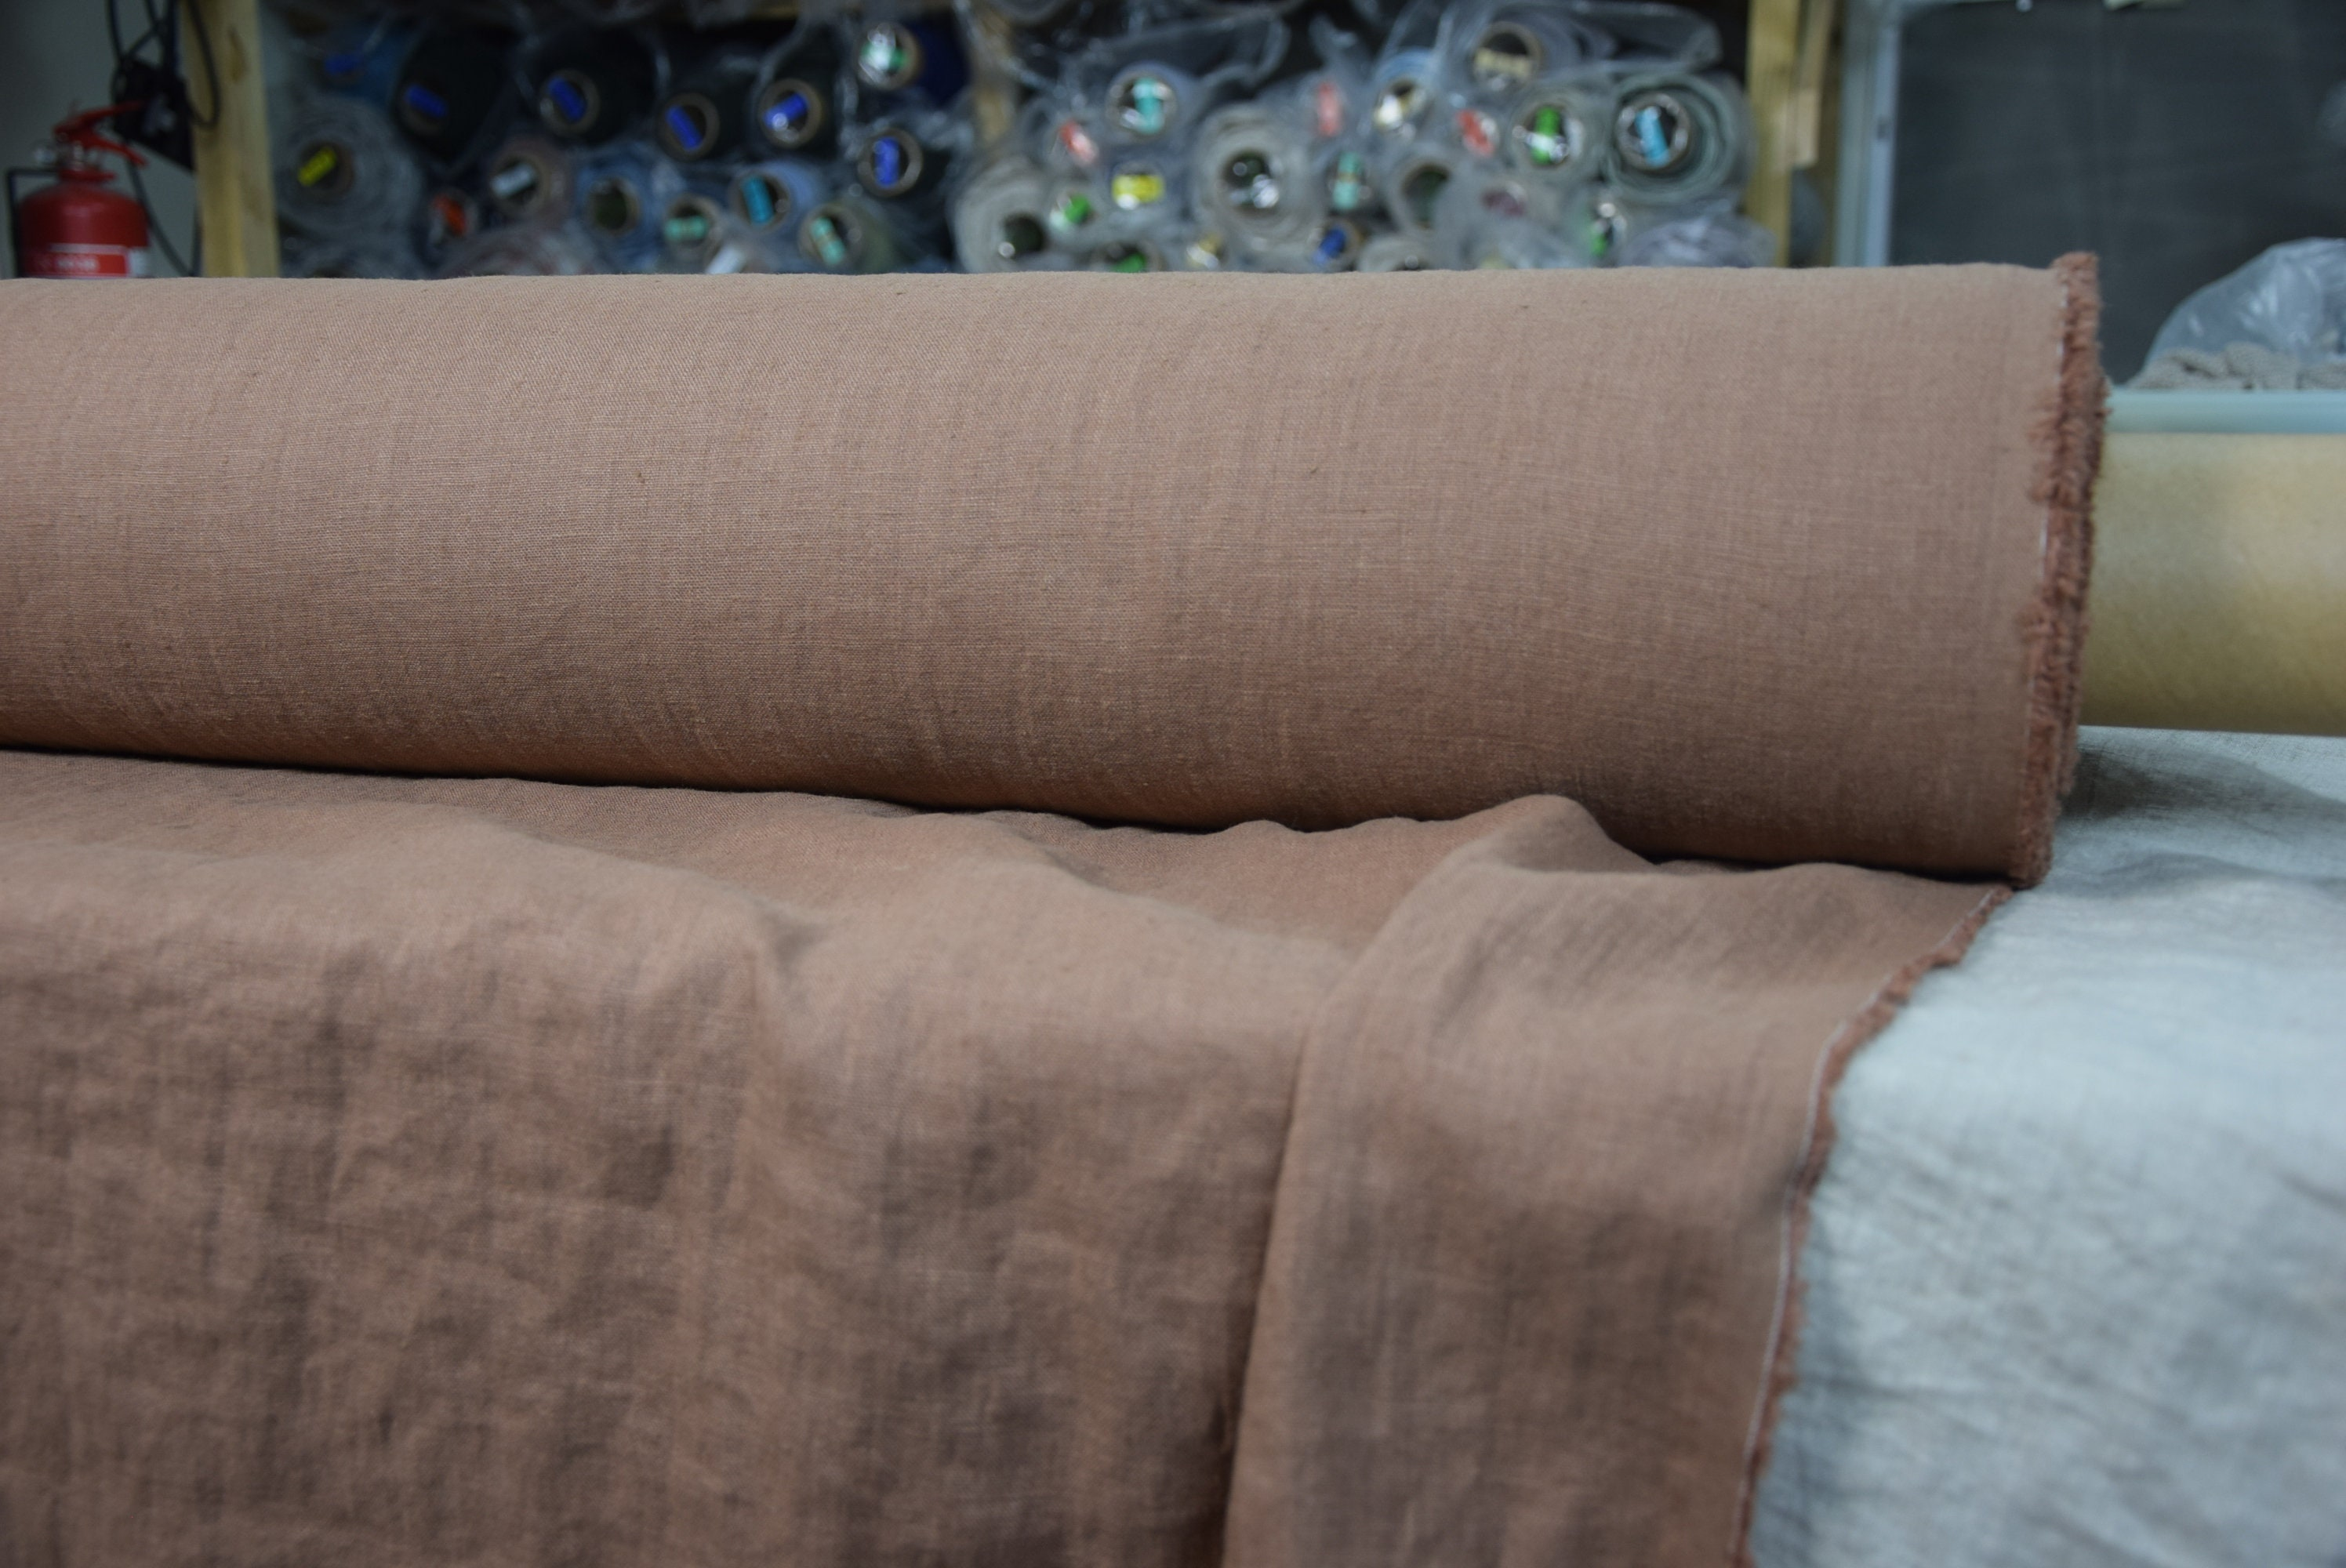 Pure 100 Linen Fabric Gloria Cocoa Brown 190gsm Medium Thickness Densely Woven Washed Softened